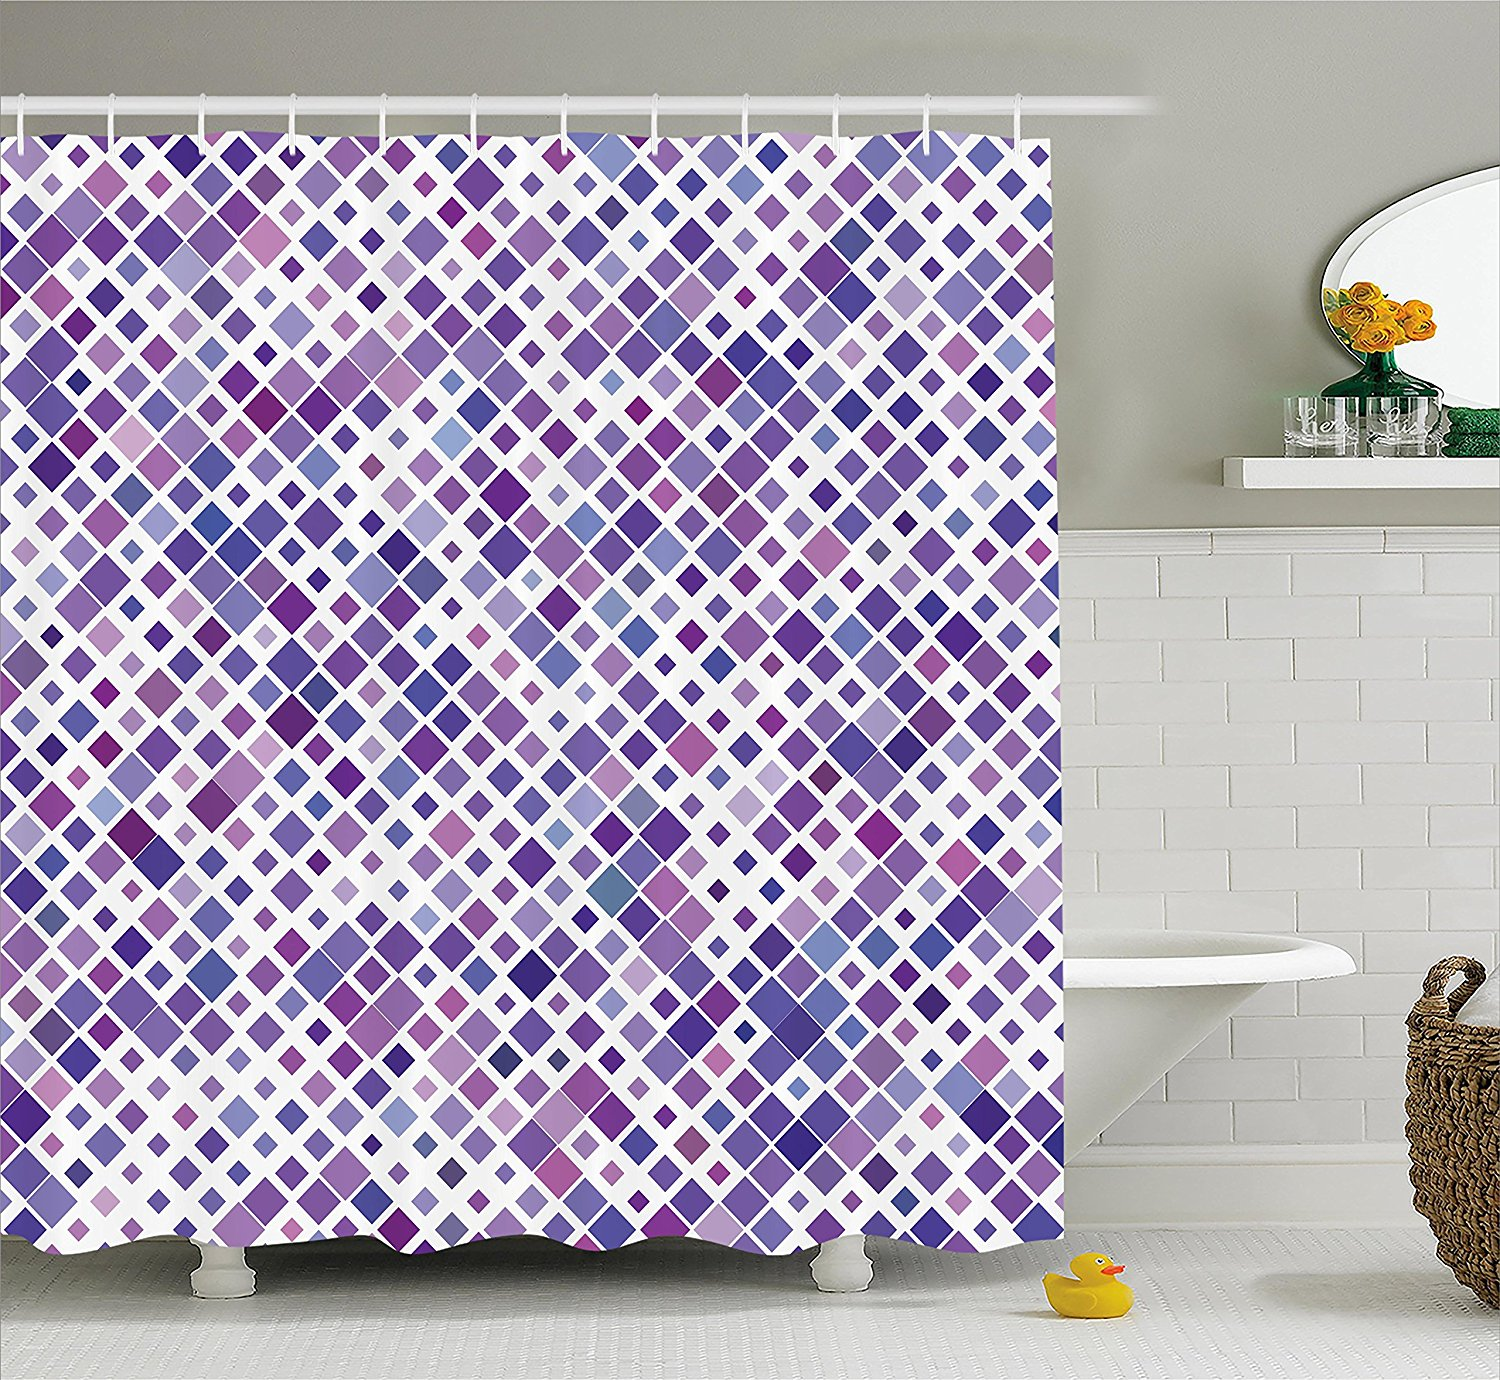 Us 13 02 43 Off Lavender Shower Curtain Set Purple Retro Mosaic Creative Pattern Square Rhythm Abstract Art Print Design Fabric Bathroom Decor In